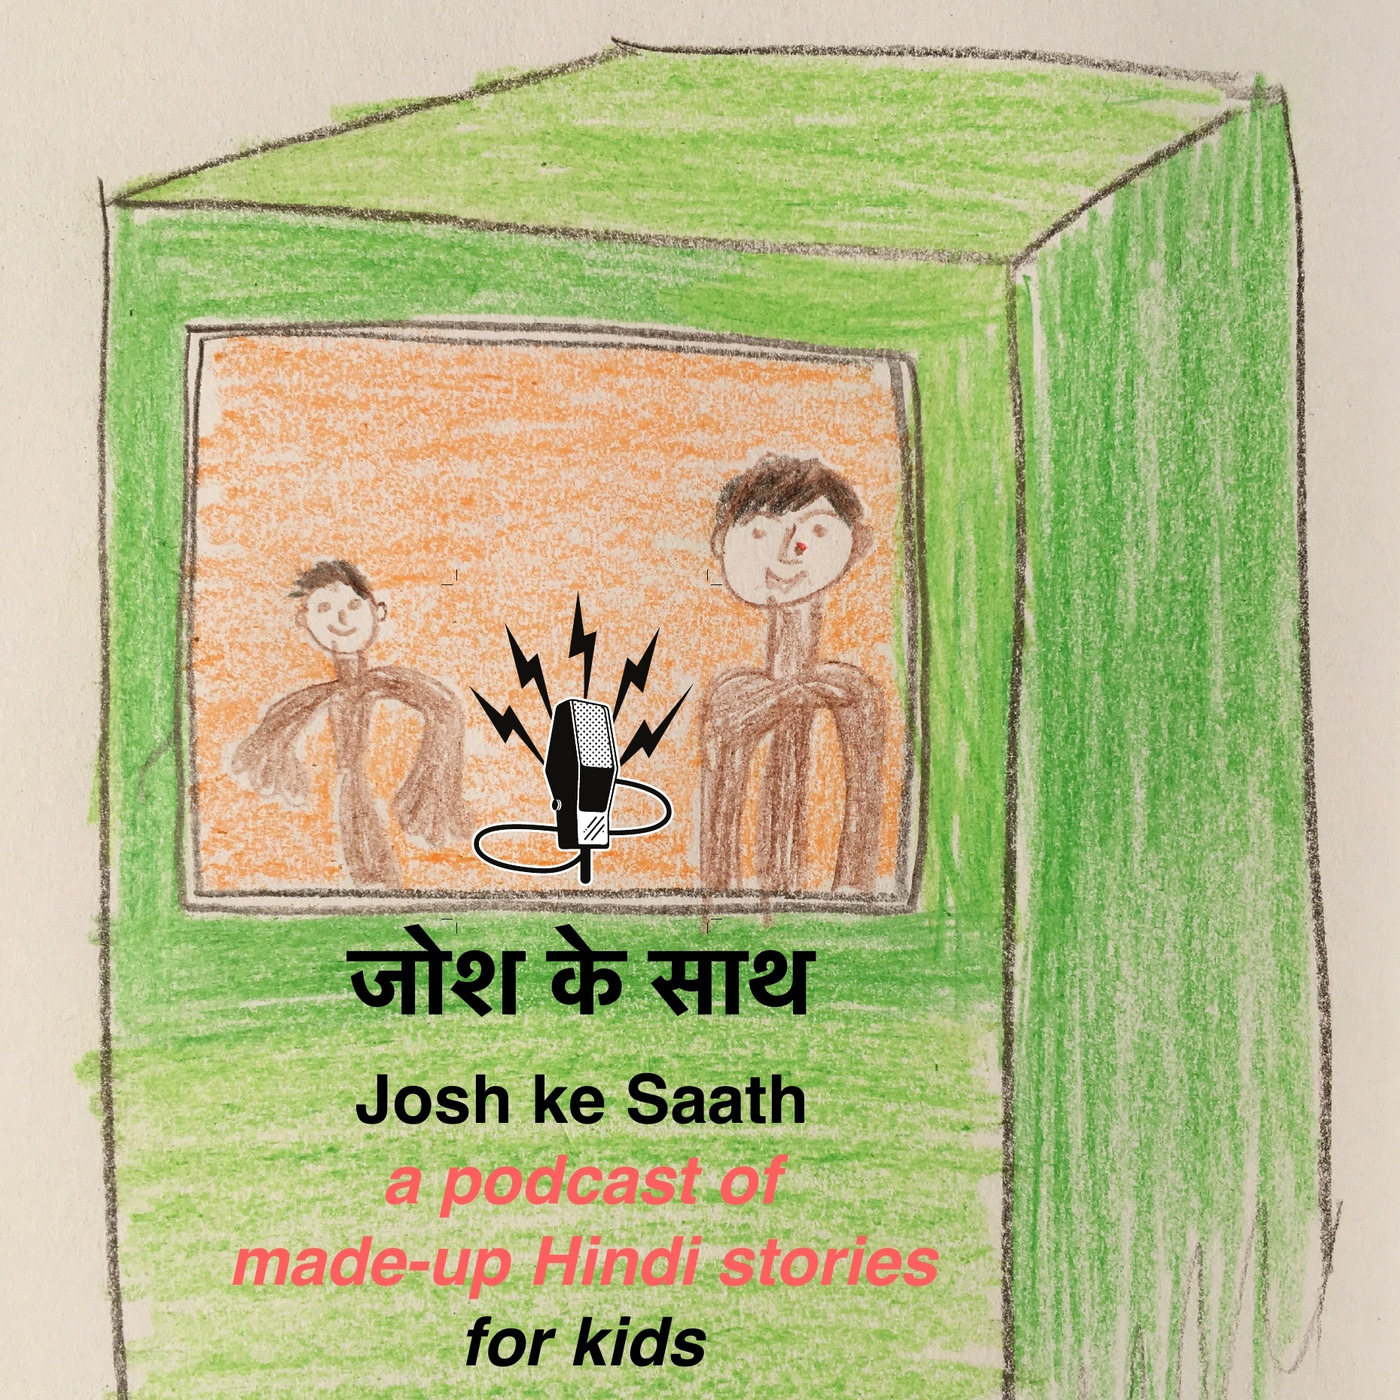 Josh Ke Saath - weekly kids podcast of made-up Hindi stories